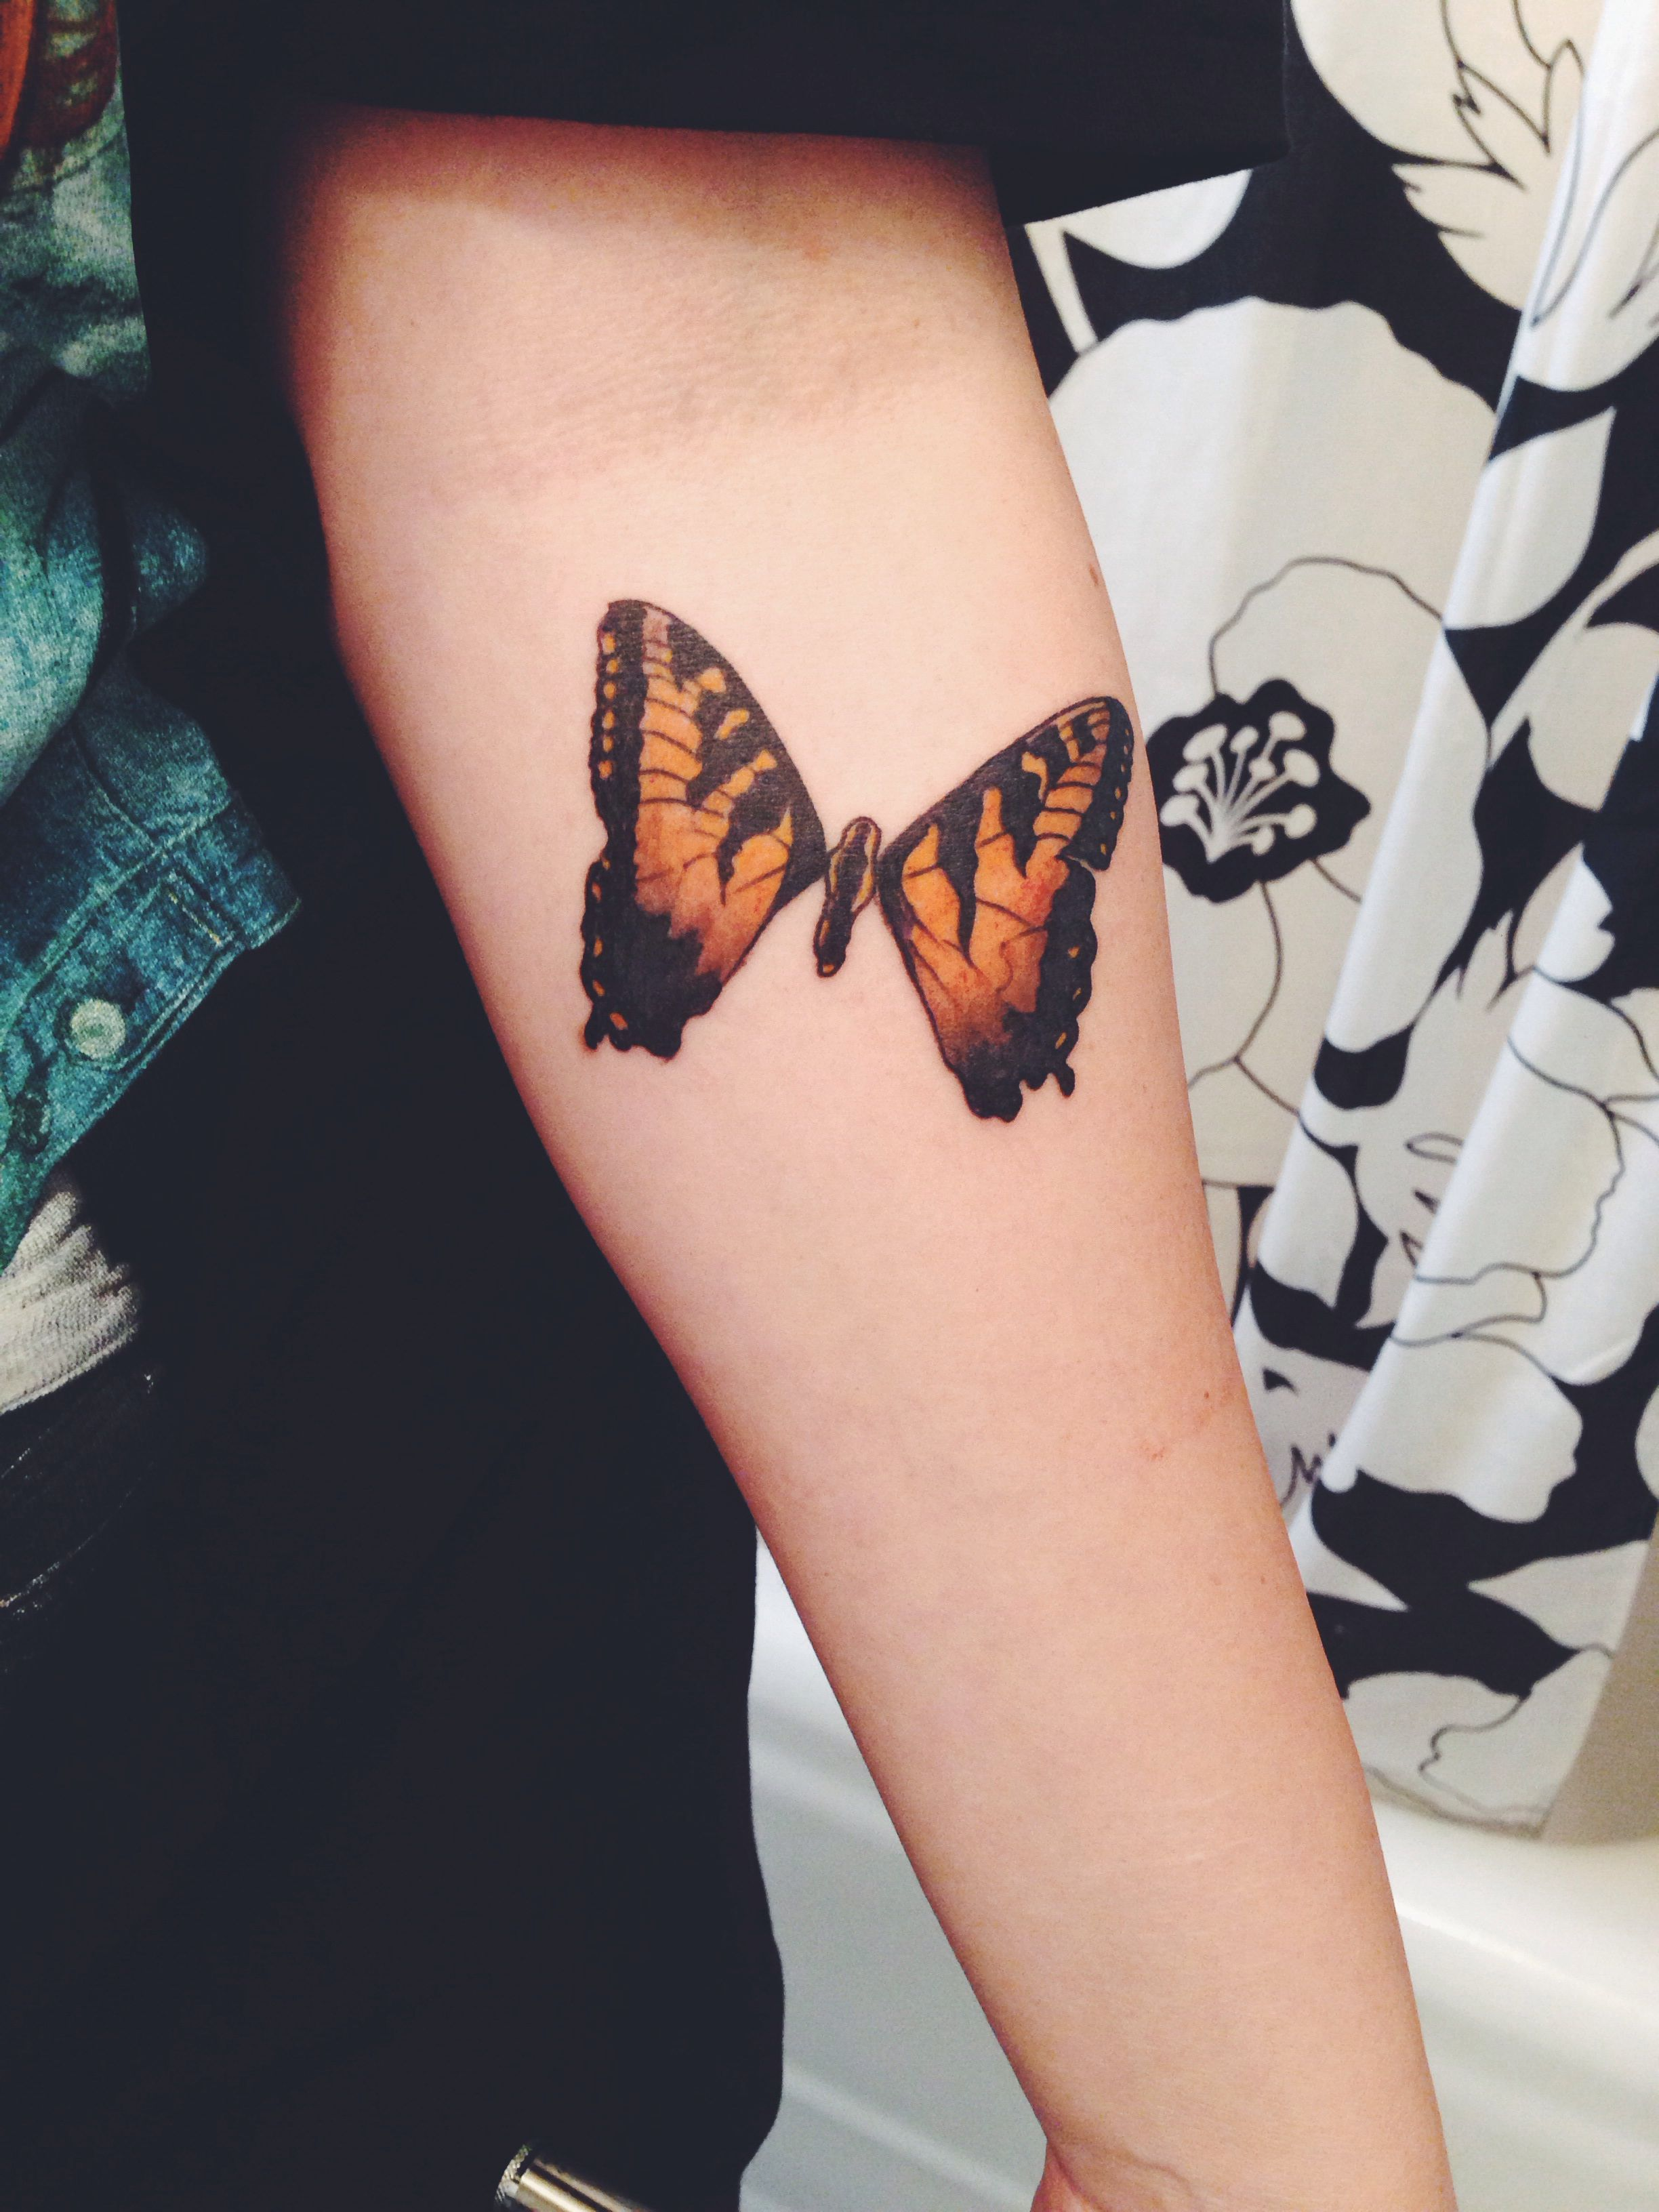 f0aeef76783e6 Paramore butterfly tattoo | Inked Up | Tattoos, Paramore, Butterfly